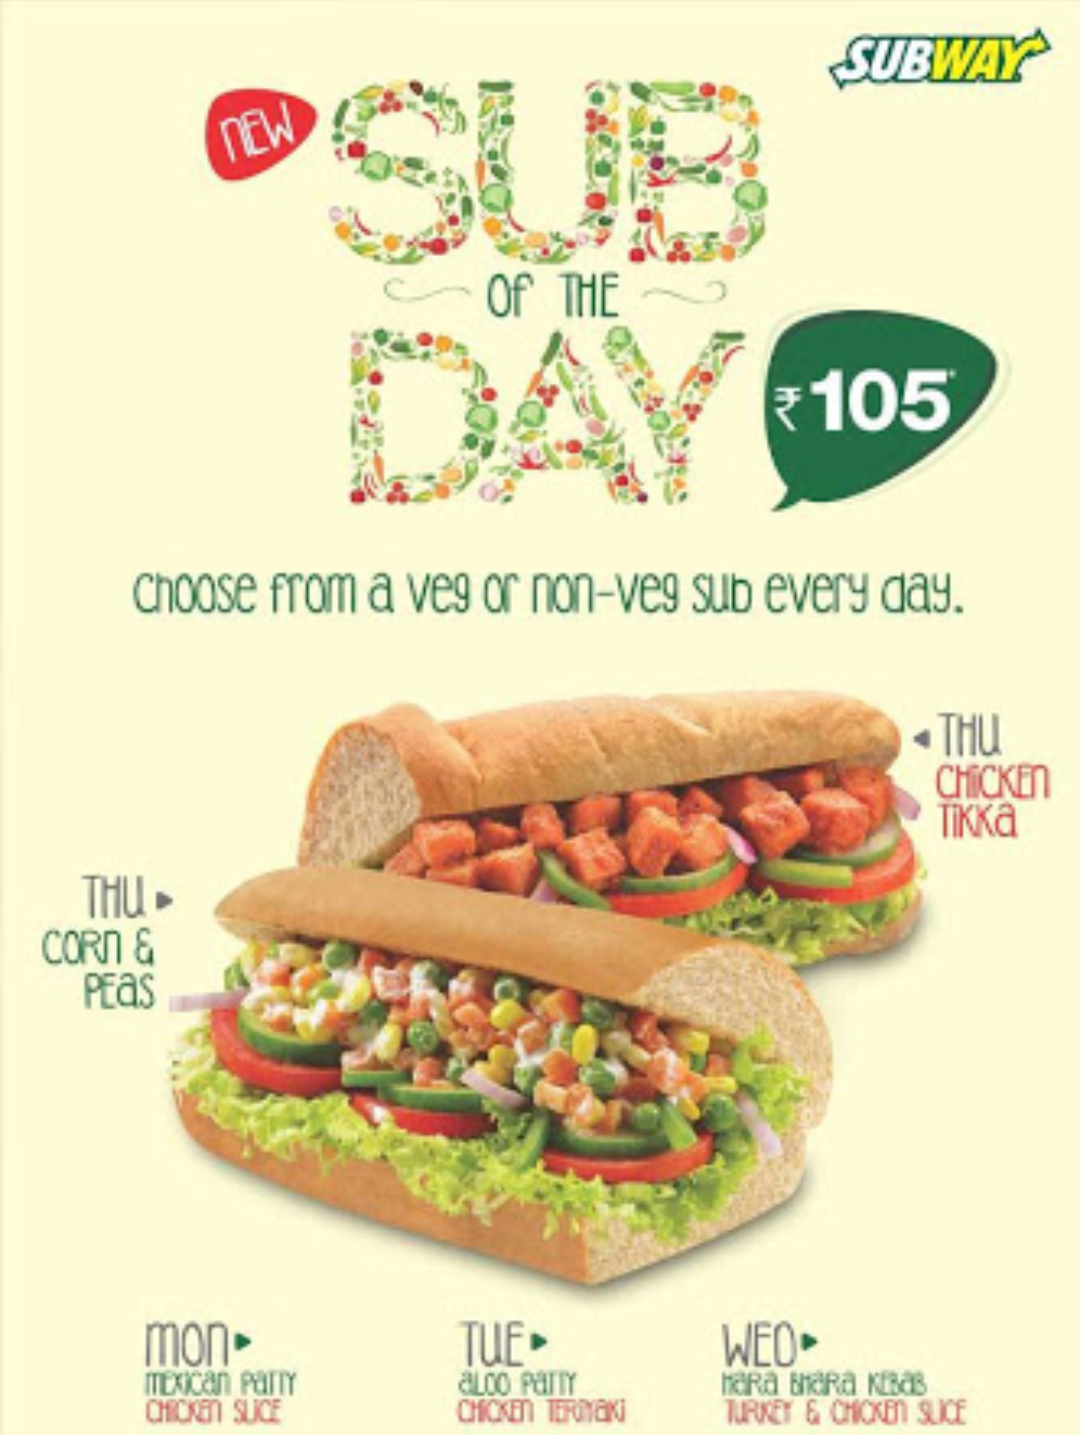 What is your Subway order? - Quora